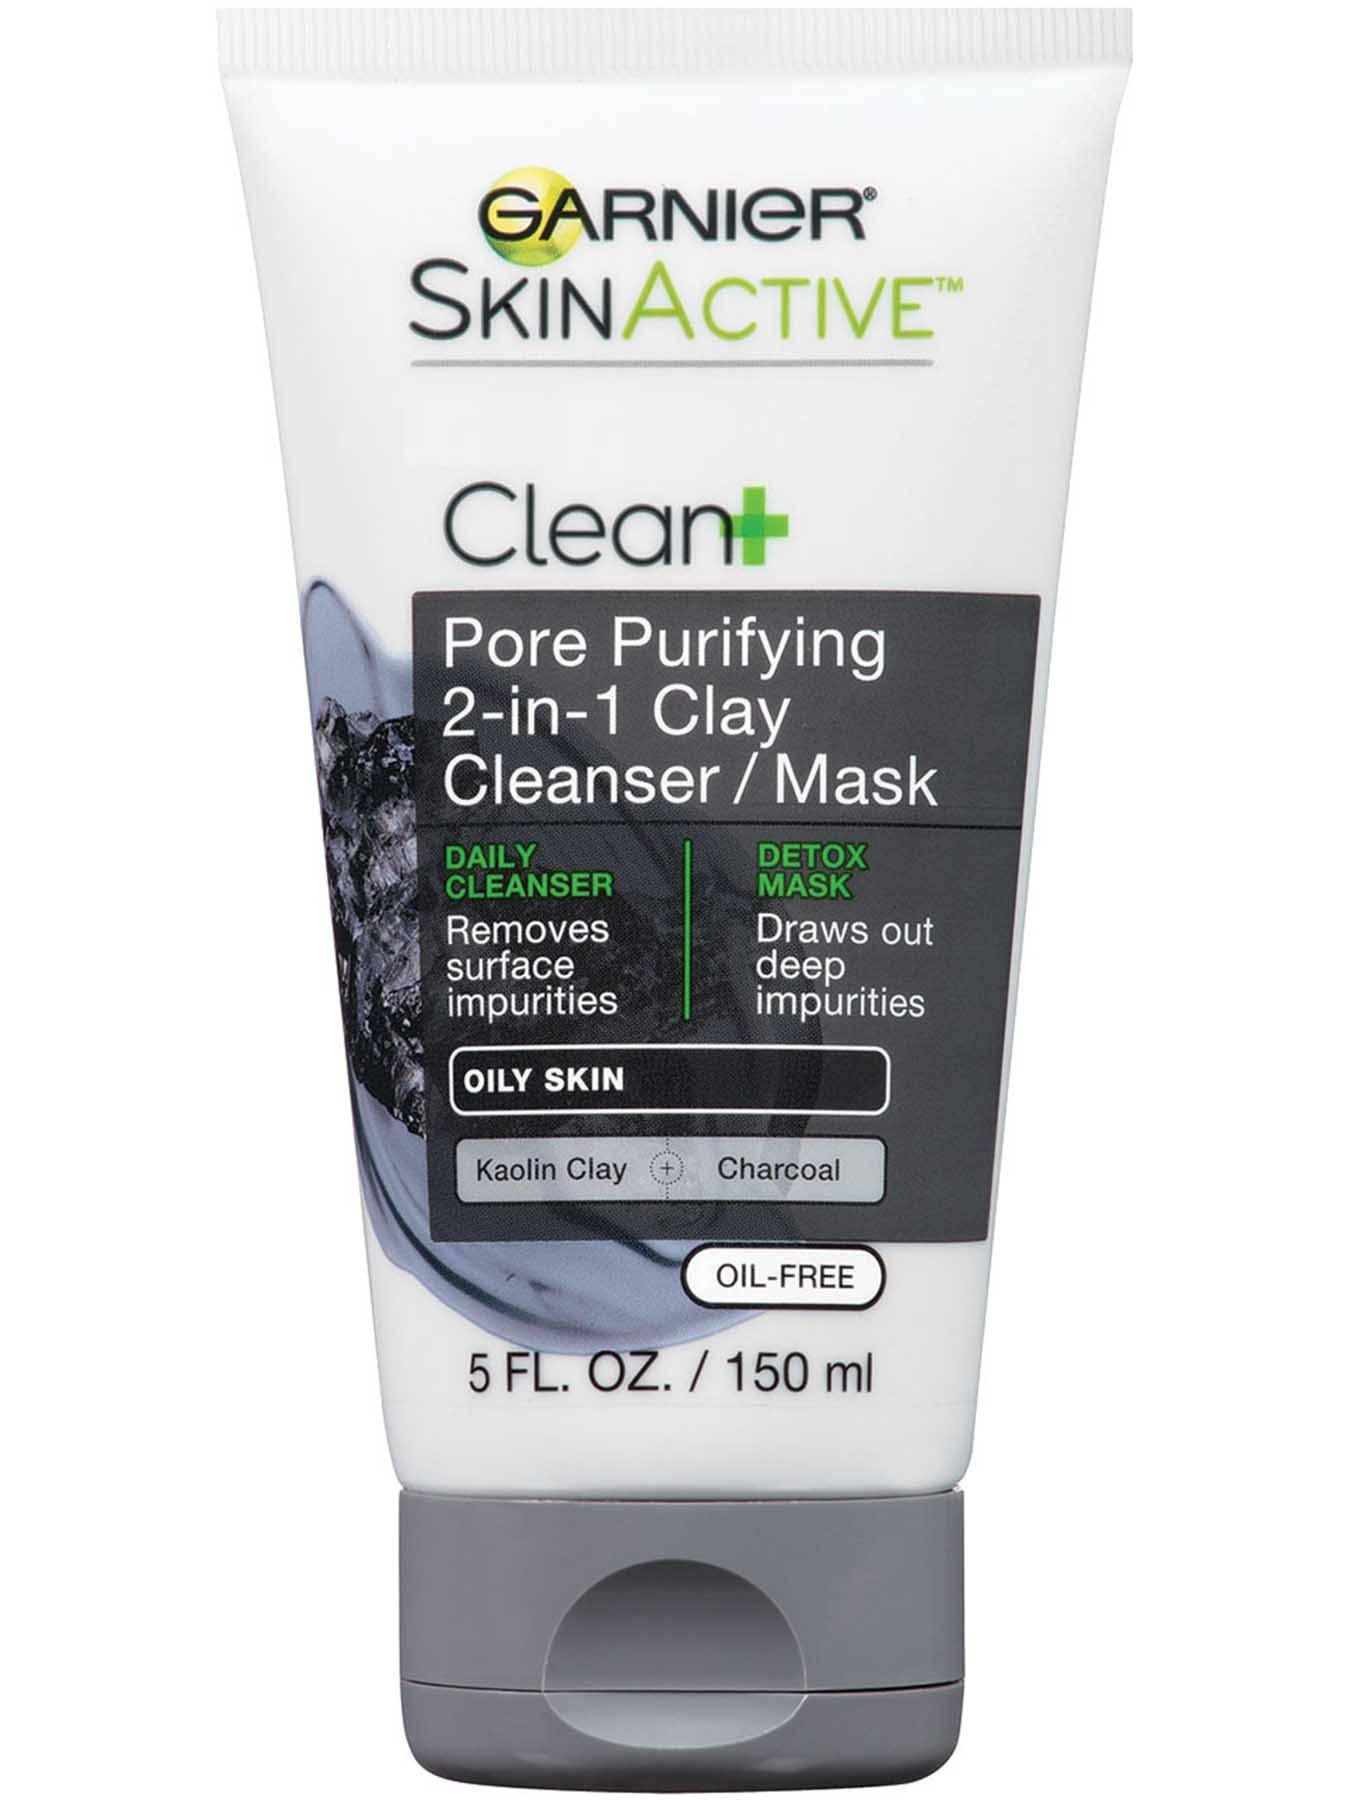 Garnier SkinActive Clean+ Pore Purifying 2-in-1 Clay Cleanser/Mask for Oily Skin - Skin Care Product for Oily Skin